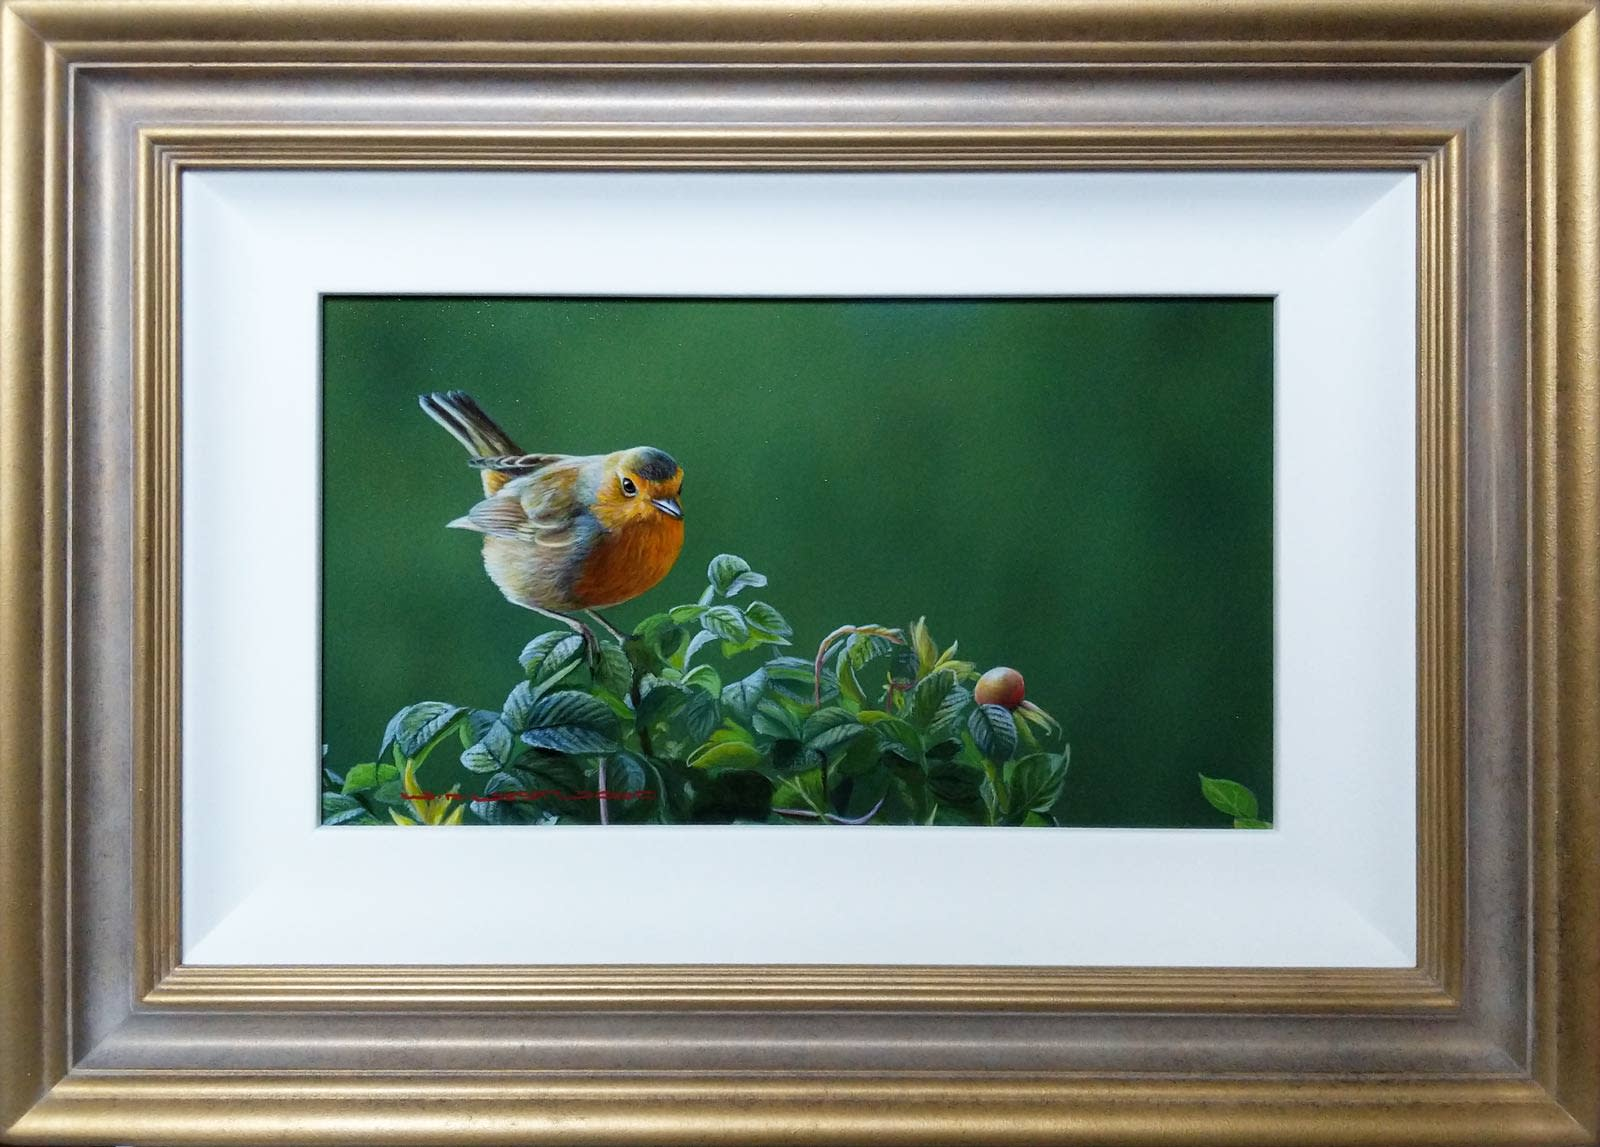 Robin on Branch Commission, Wayne Westwood